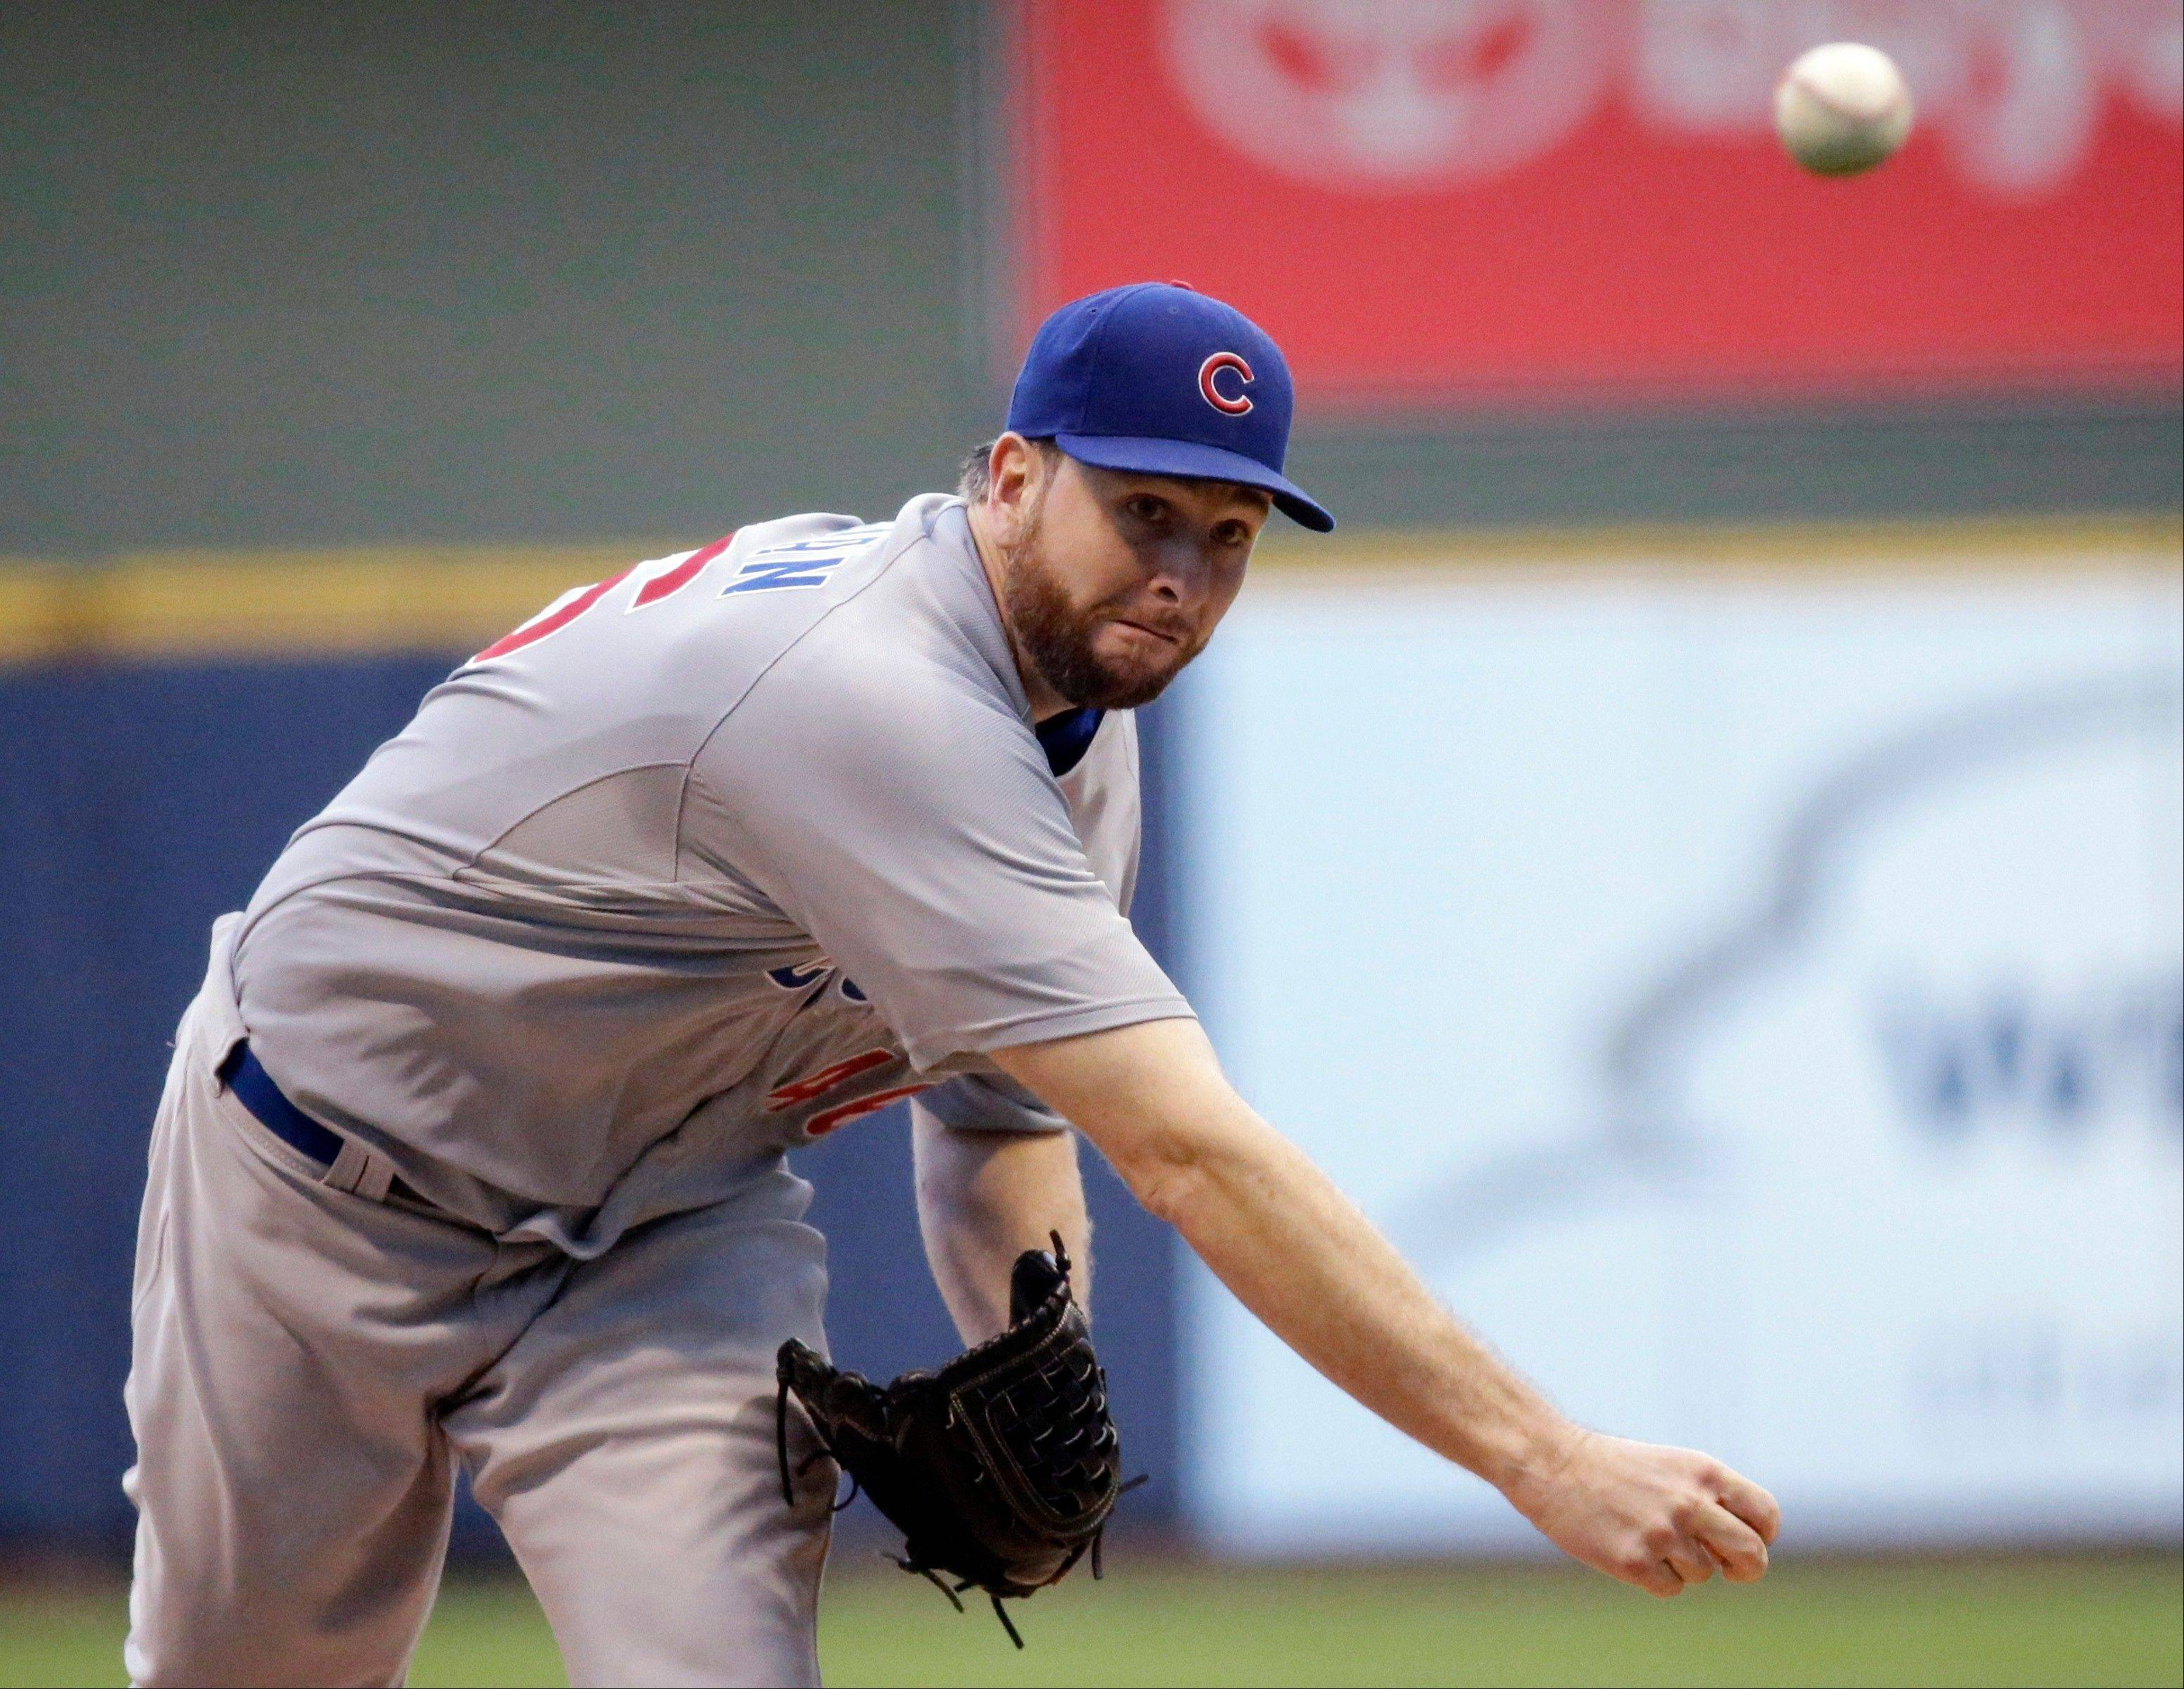 Chicago Cubs starting pitcher Scott Feldman throws during the first inning of a baseball game against the Milwaukee Brewers on Wednesday, June 26, 2013, in Milwaukee. (AP Photo/Morry Gash)